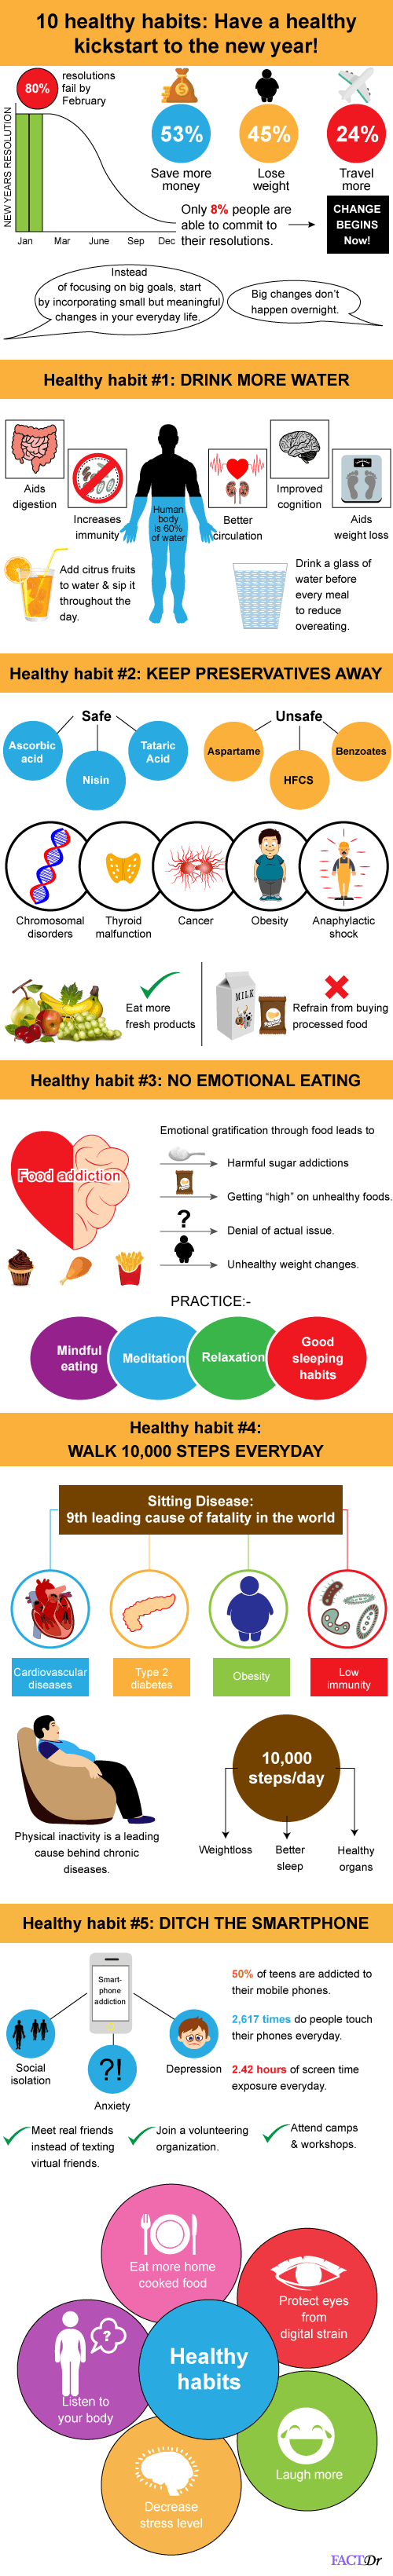 healthy habits infographic